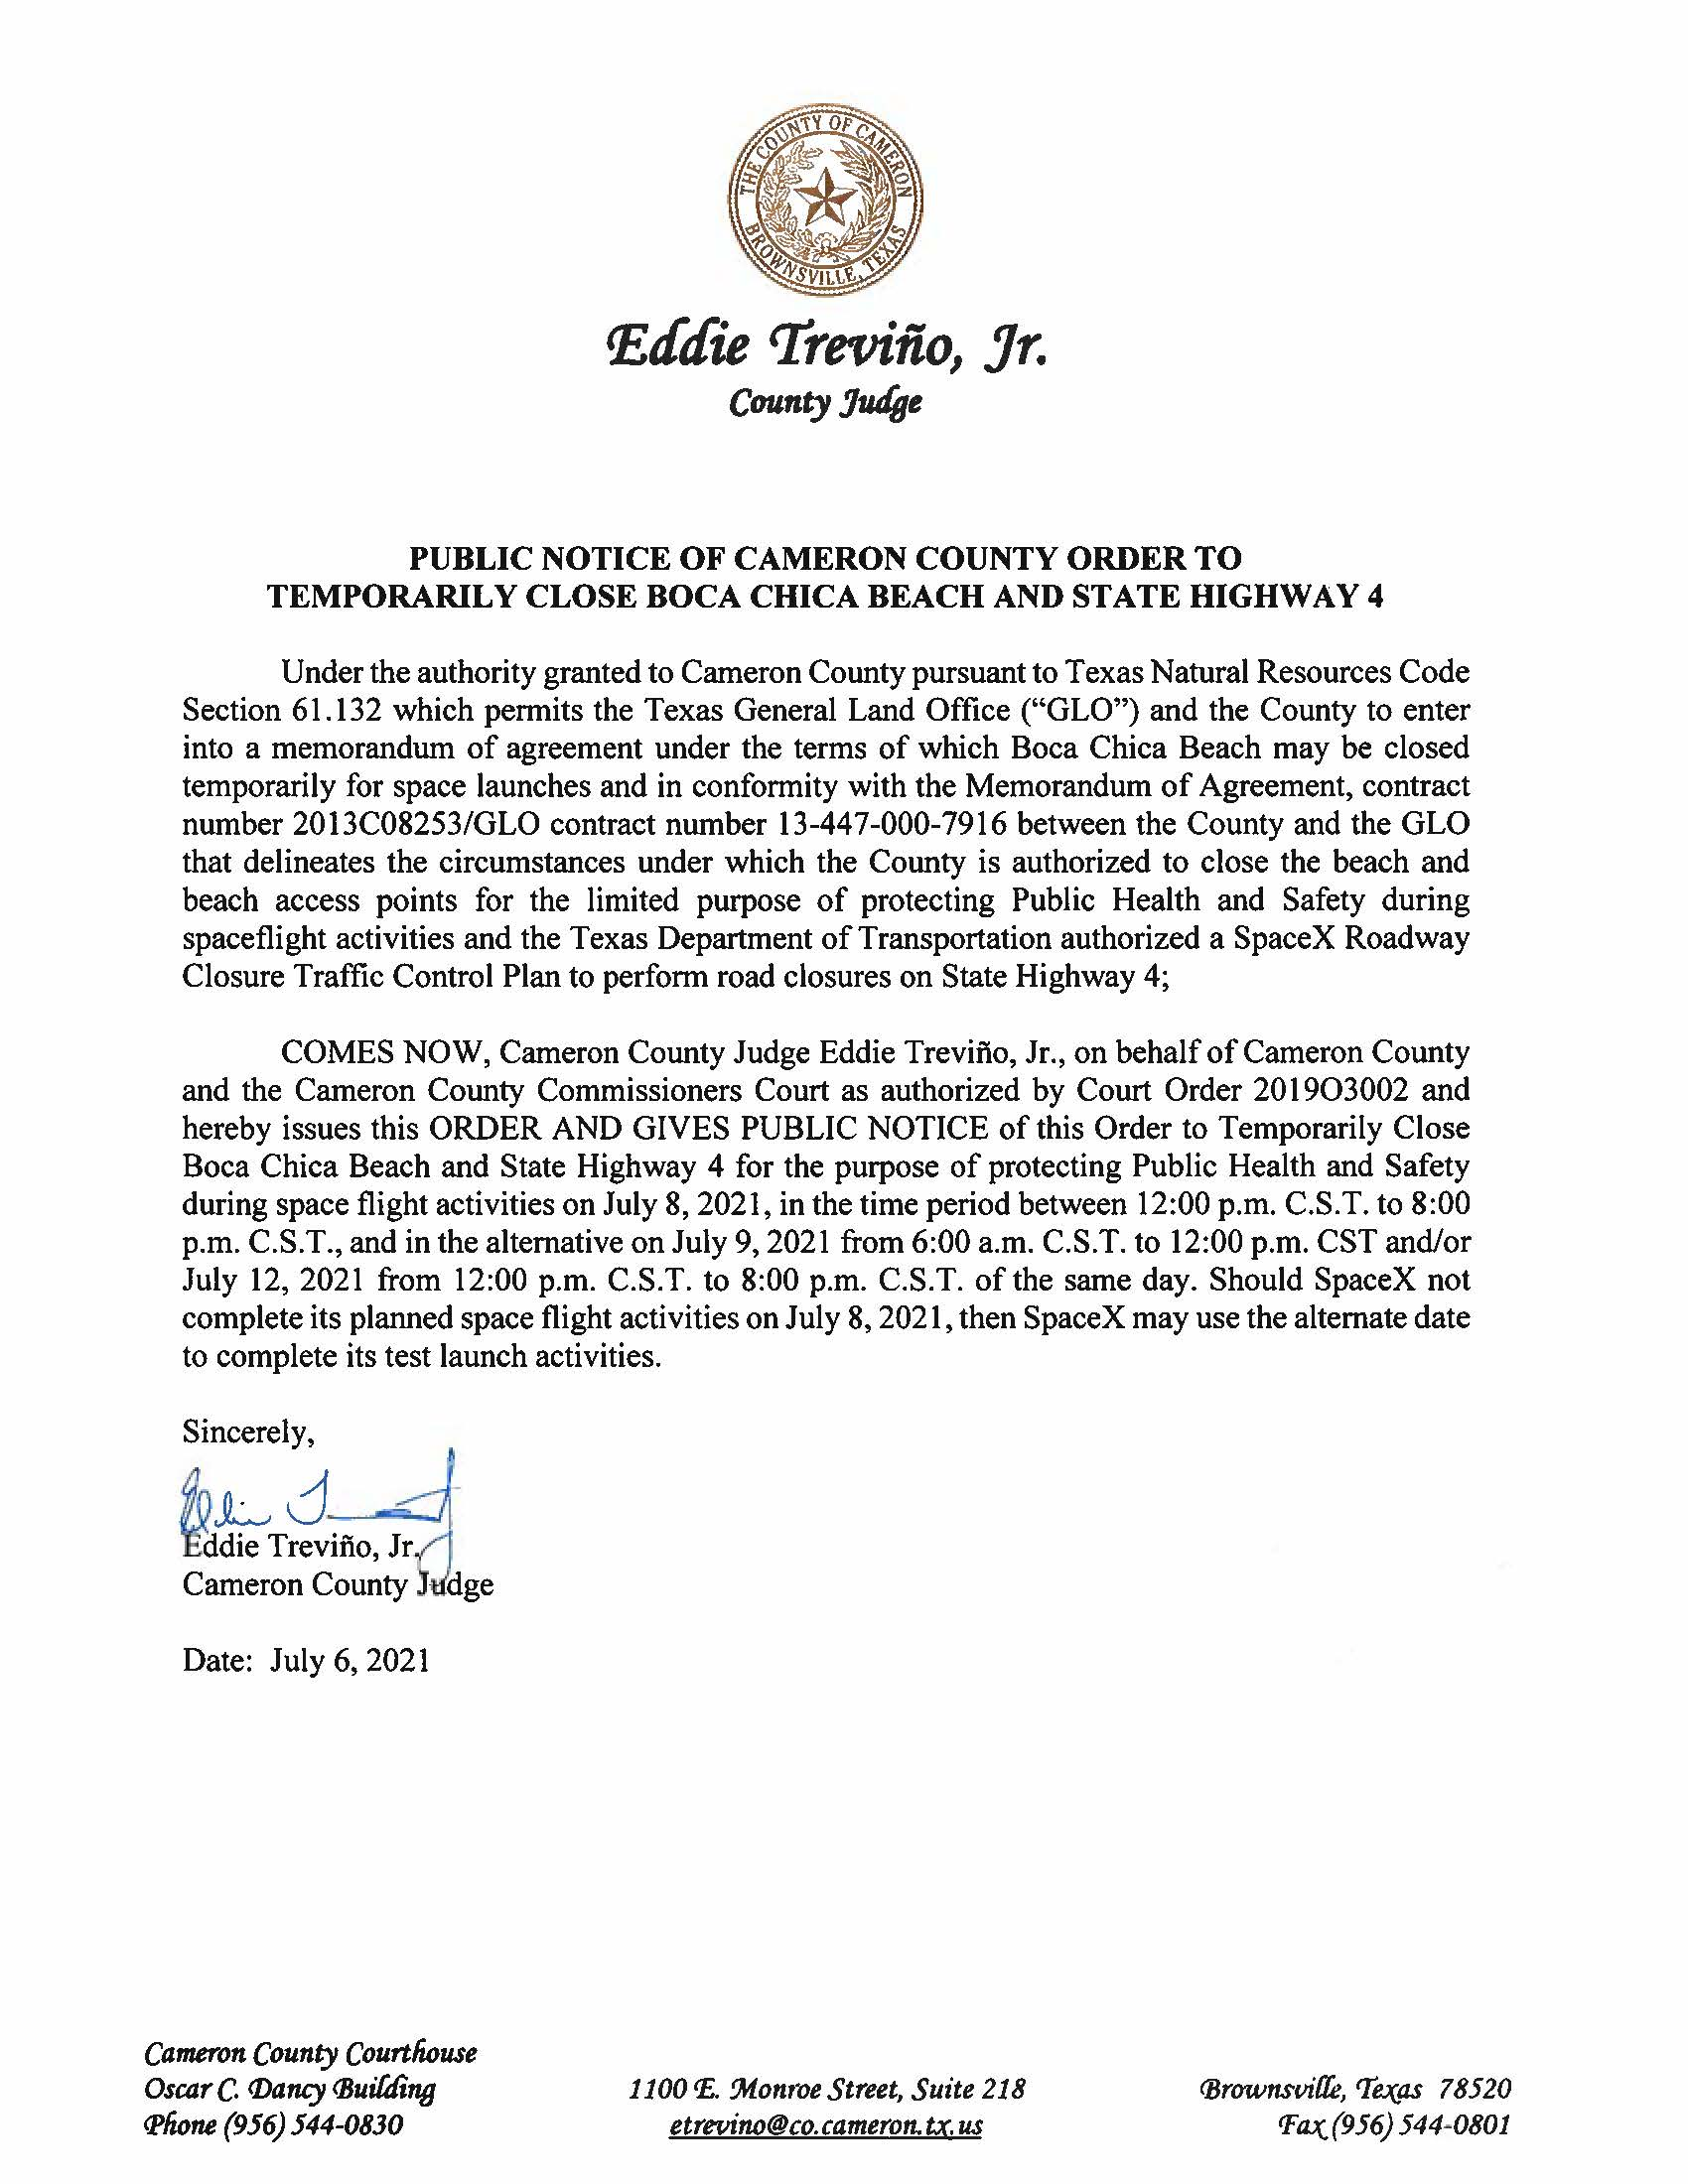 PUBLIC NOTICE OF CAMERON COUNTY ORDER TO TEMP. BEACH CLOSURE AND HWY.07.08.2021